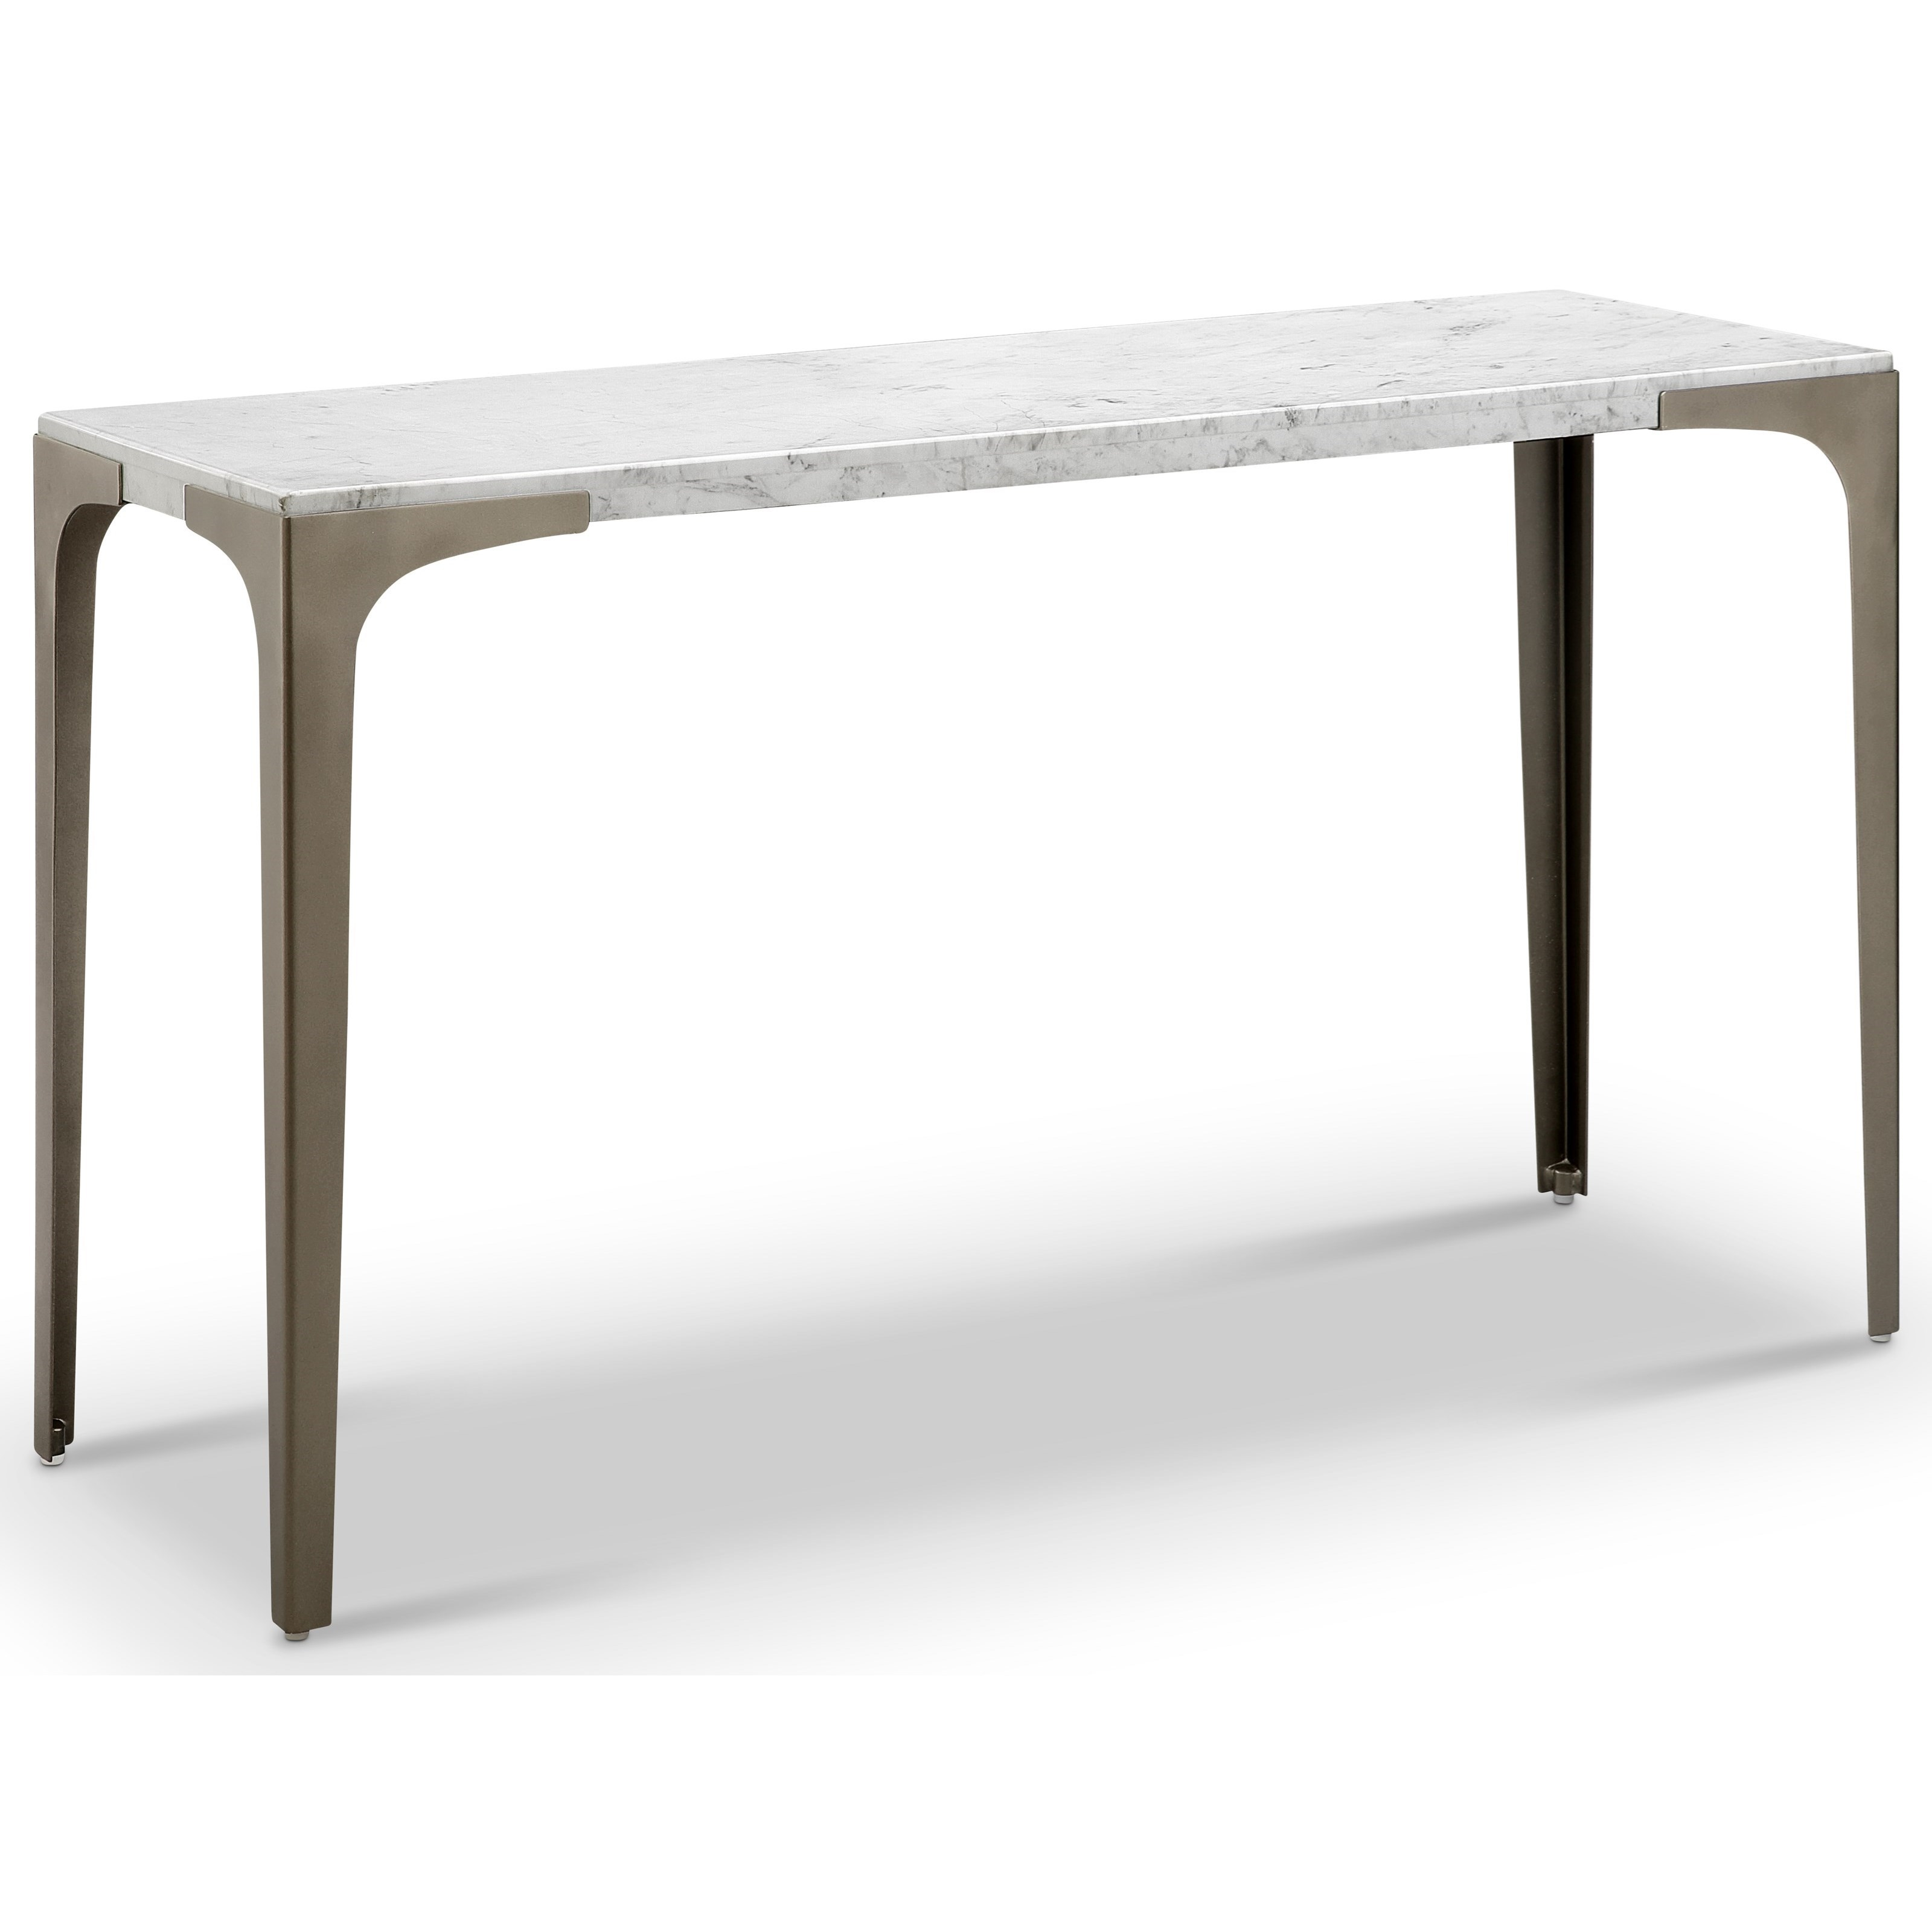 Magnussen Home Mercer T4578-73 Contemporary Sofa Table with Marble ...